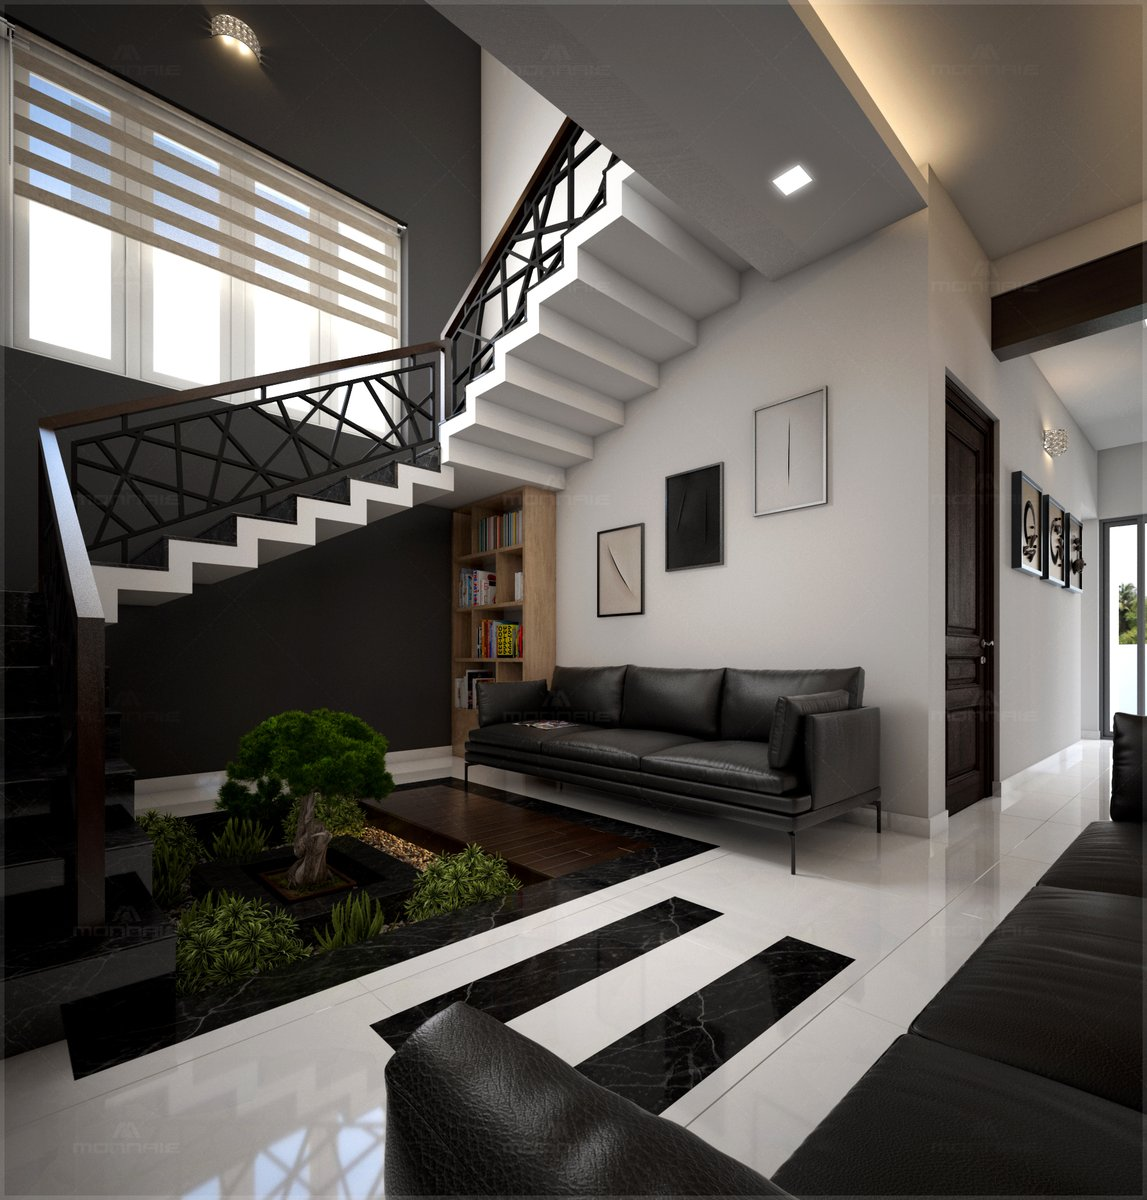 Unique Design for Staircases that will make your home beauty... Create your home @  #monnaie #homedesign #interiordesign #architecturaldesign #art #design #looking #doing #home #floor #deco #house #interiordesign #architecture